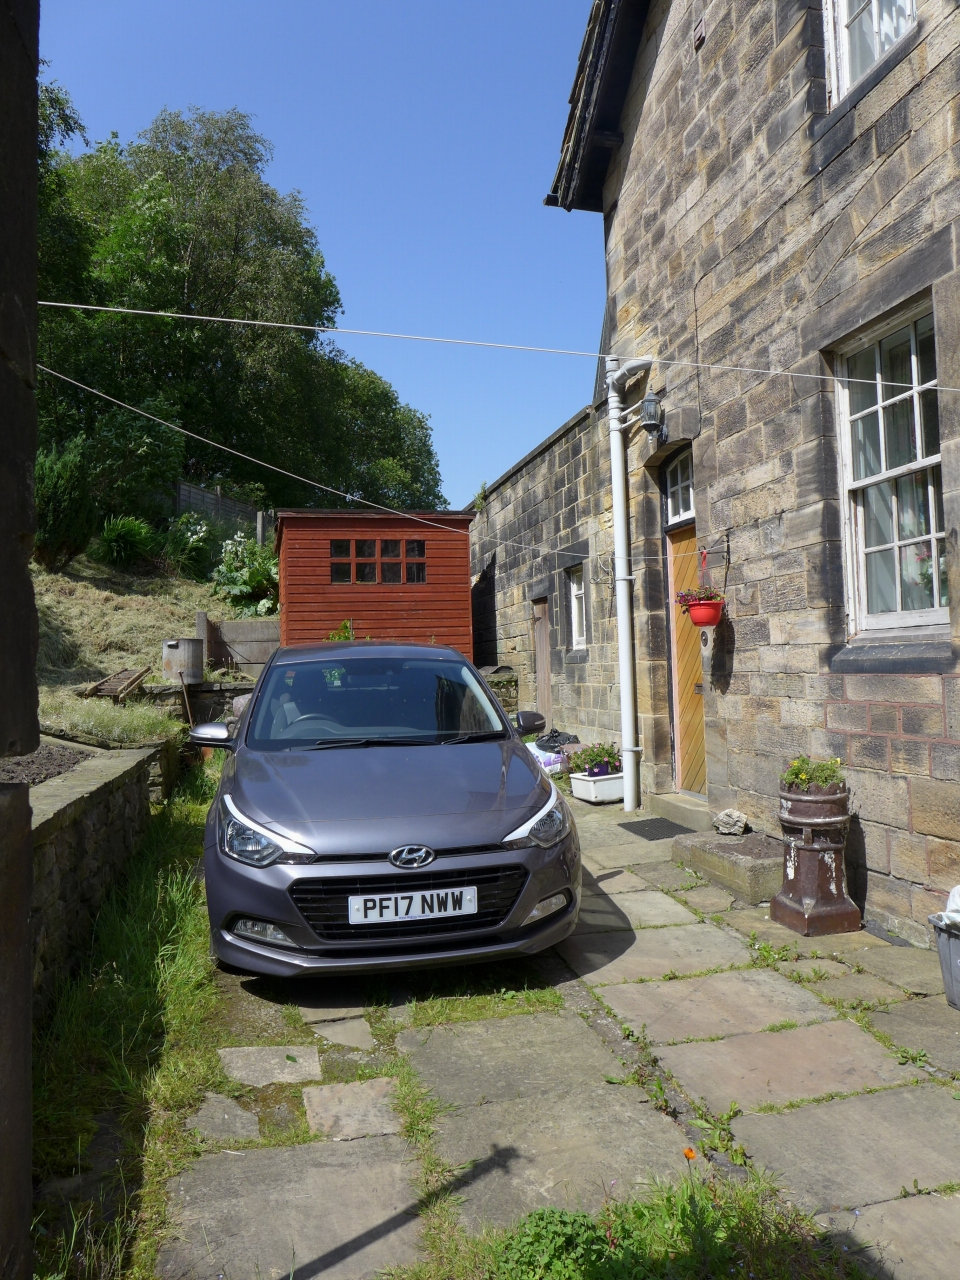 3 bedroom end terraced house For Sale in Calderdale - Photograph 13.